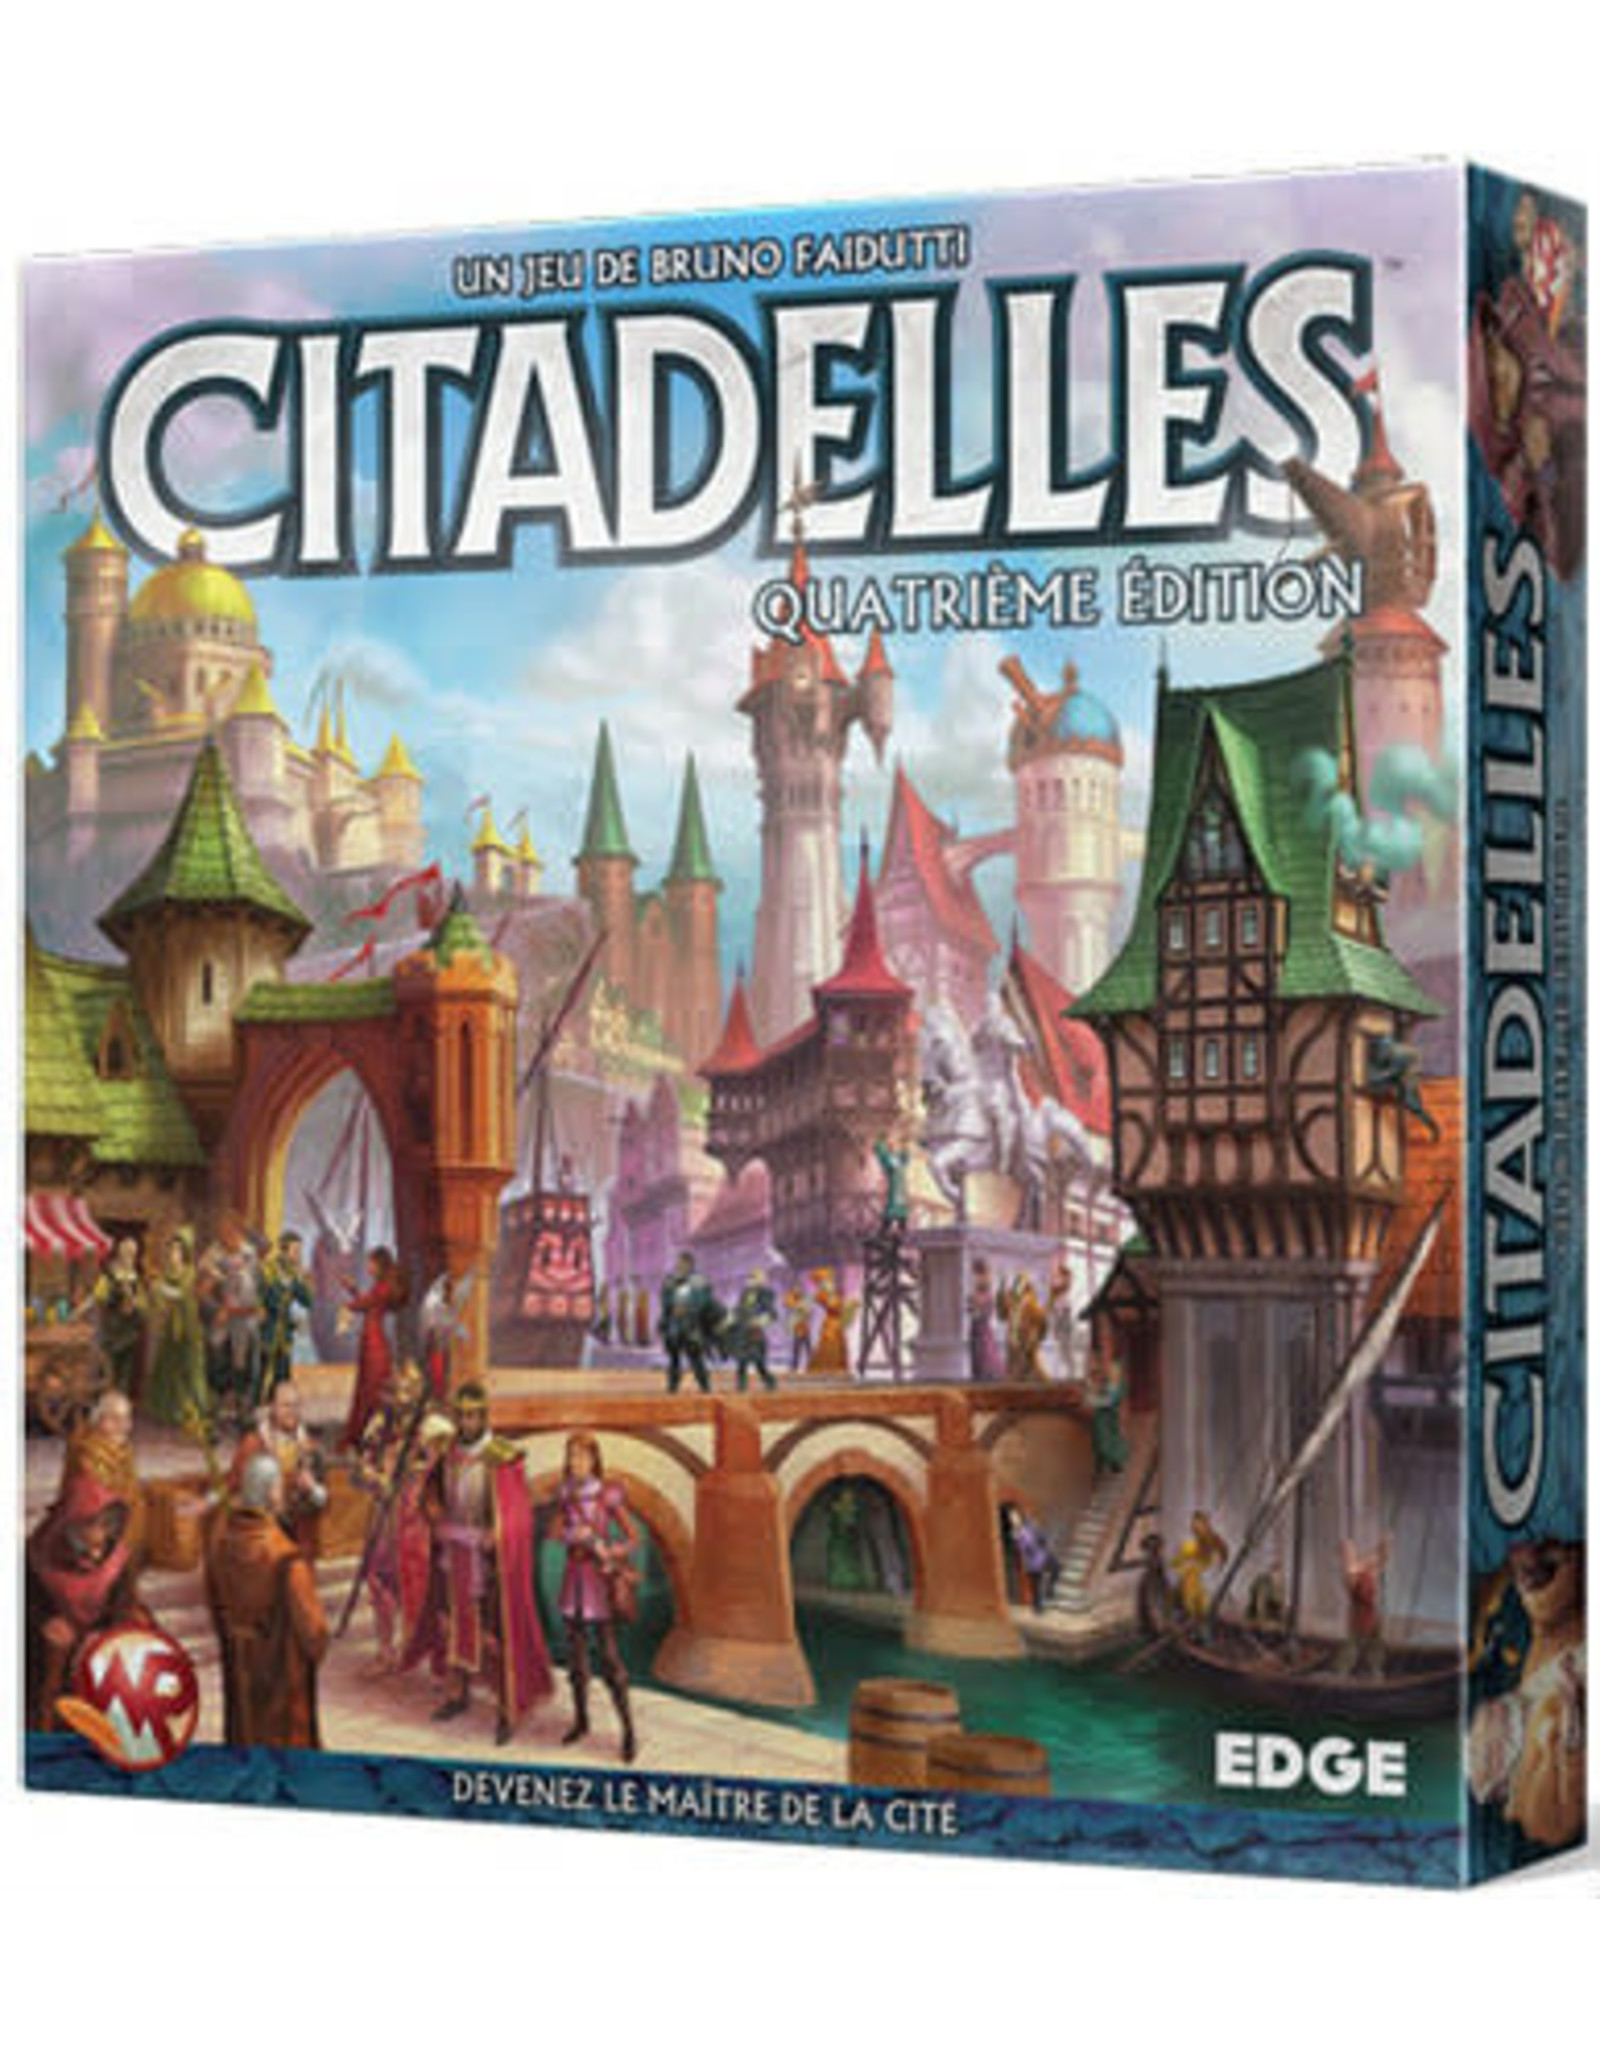 FANTASY FLIGHT CITADELLES 4IEM EDITION